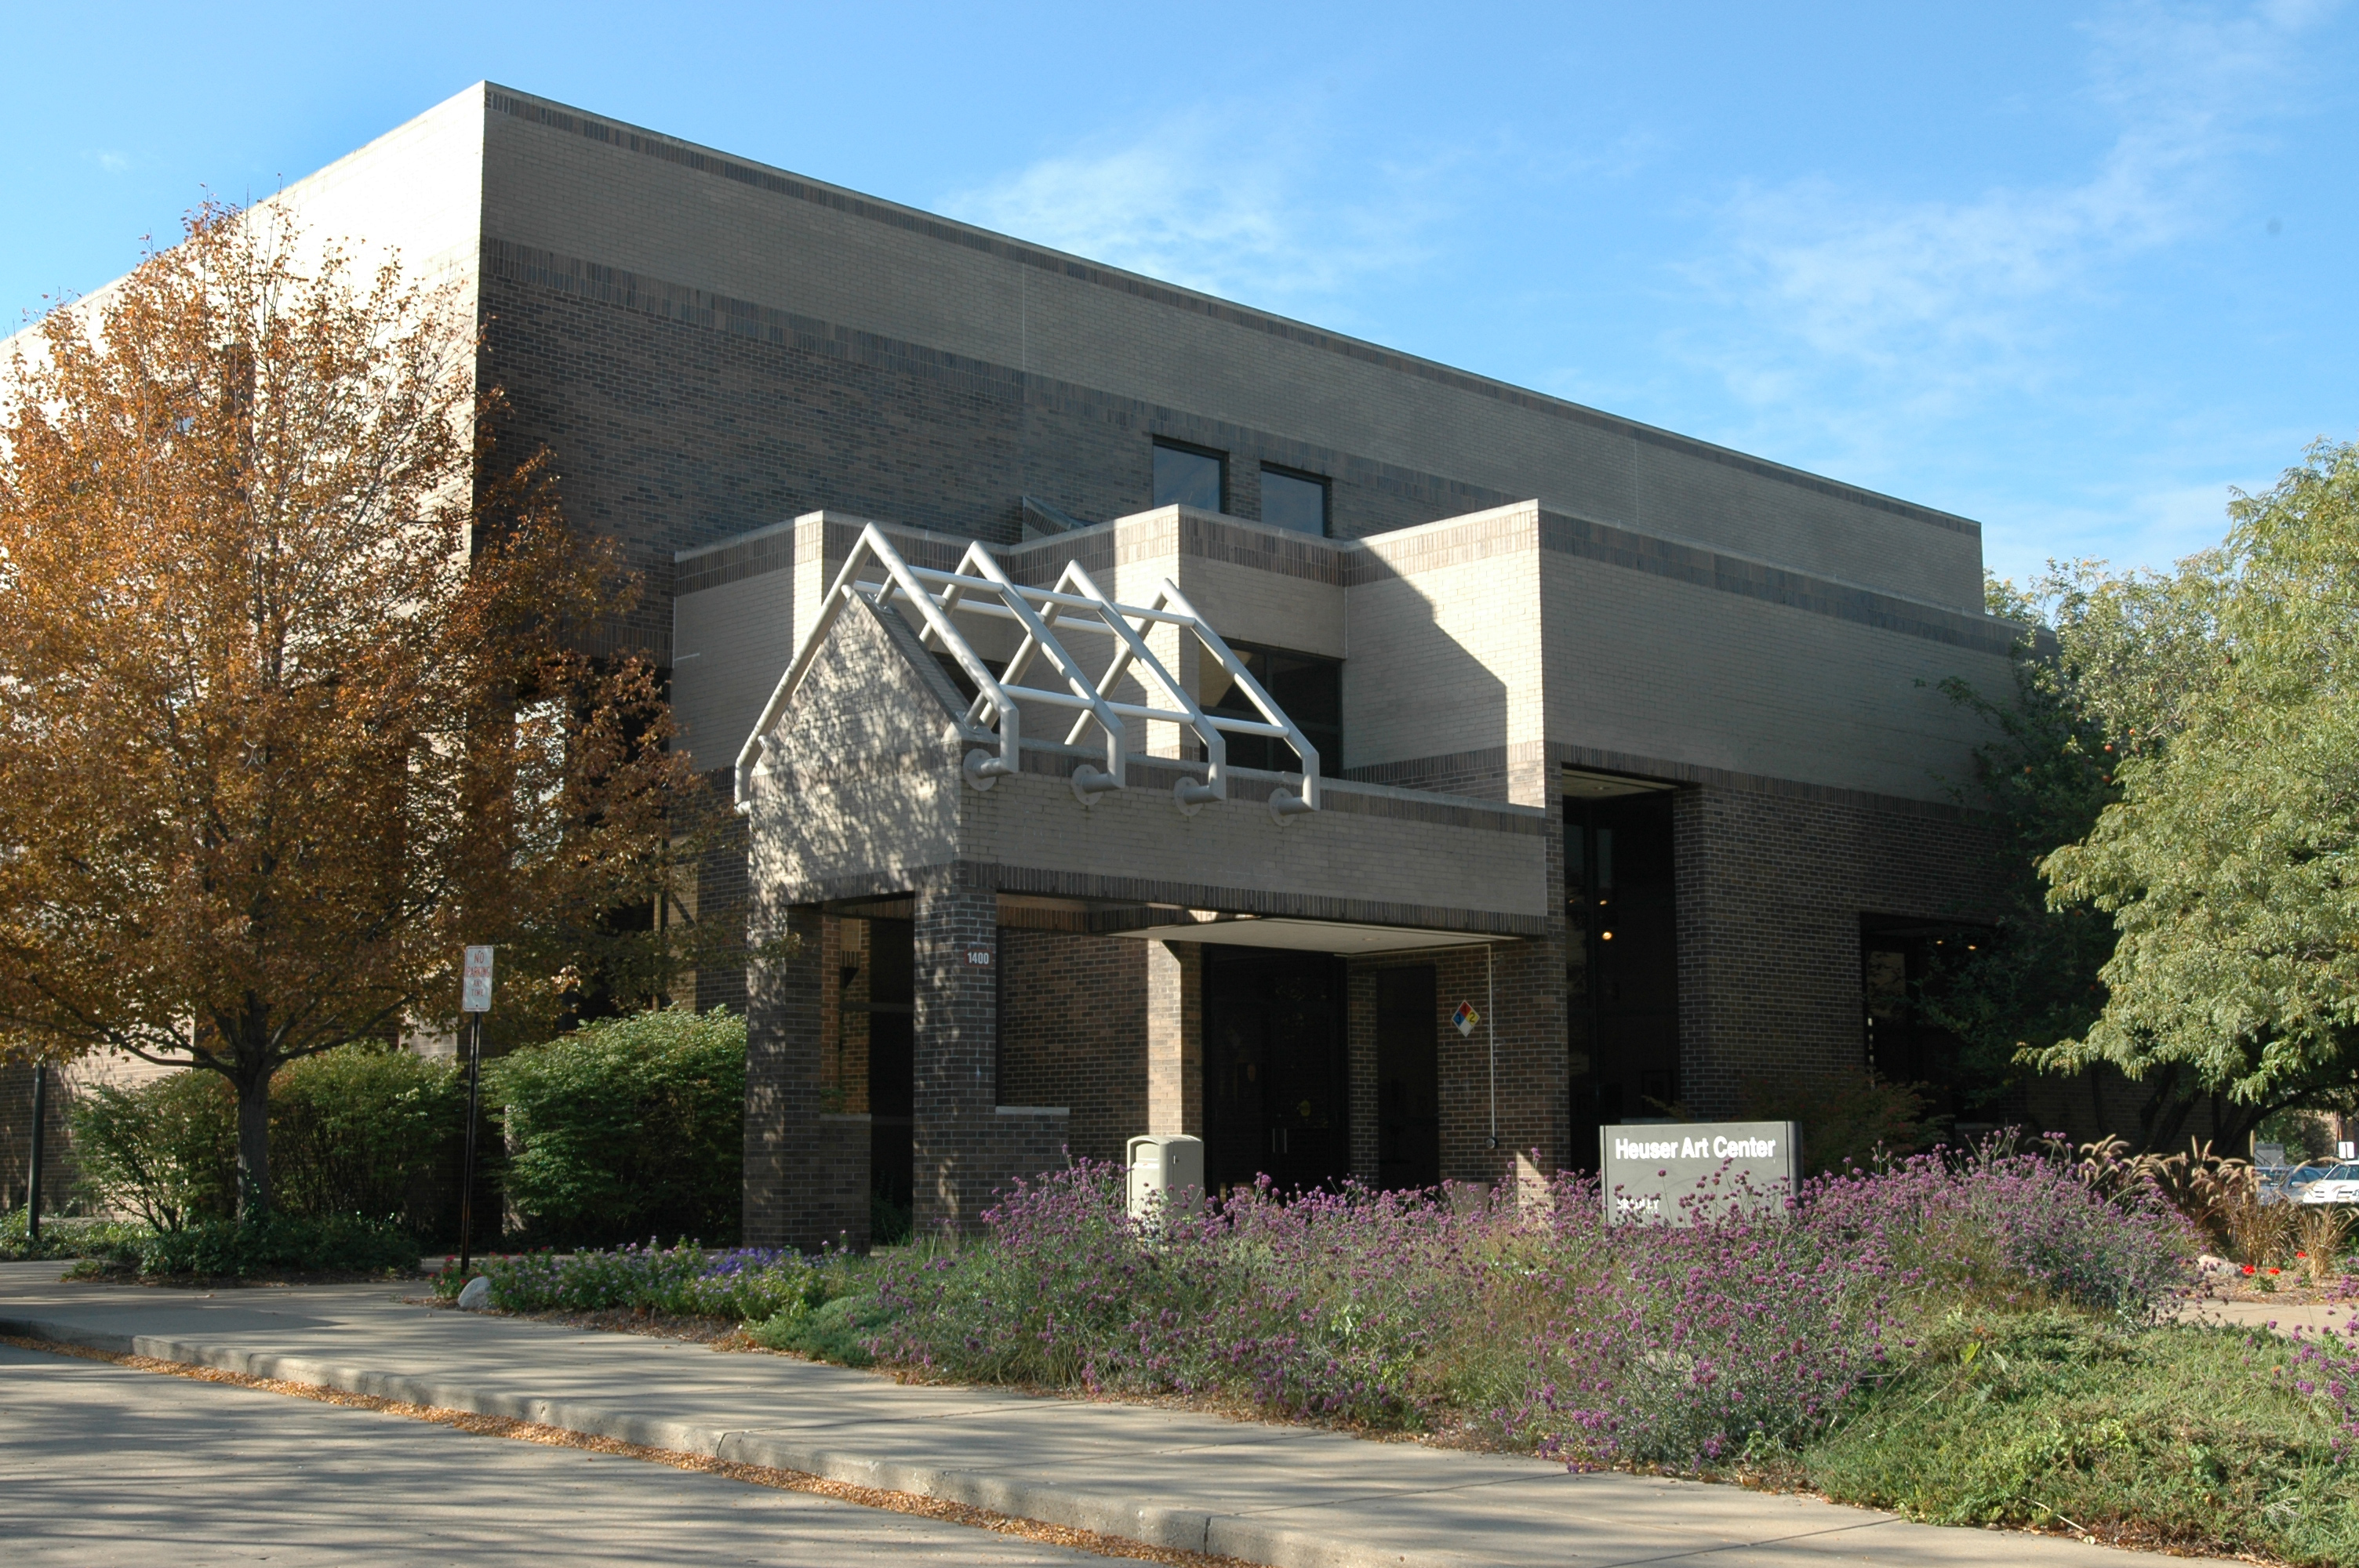 Picture of Heuser Art Center